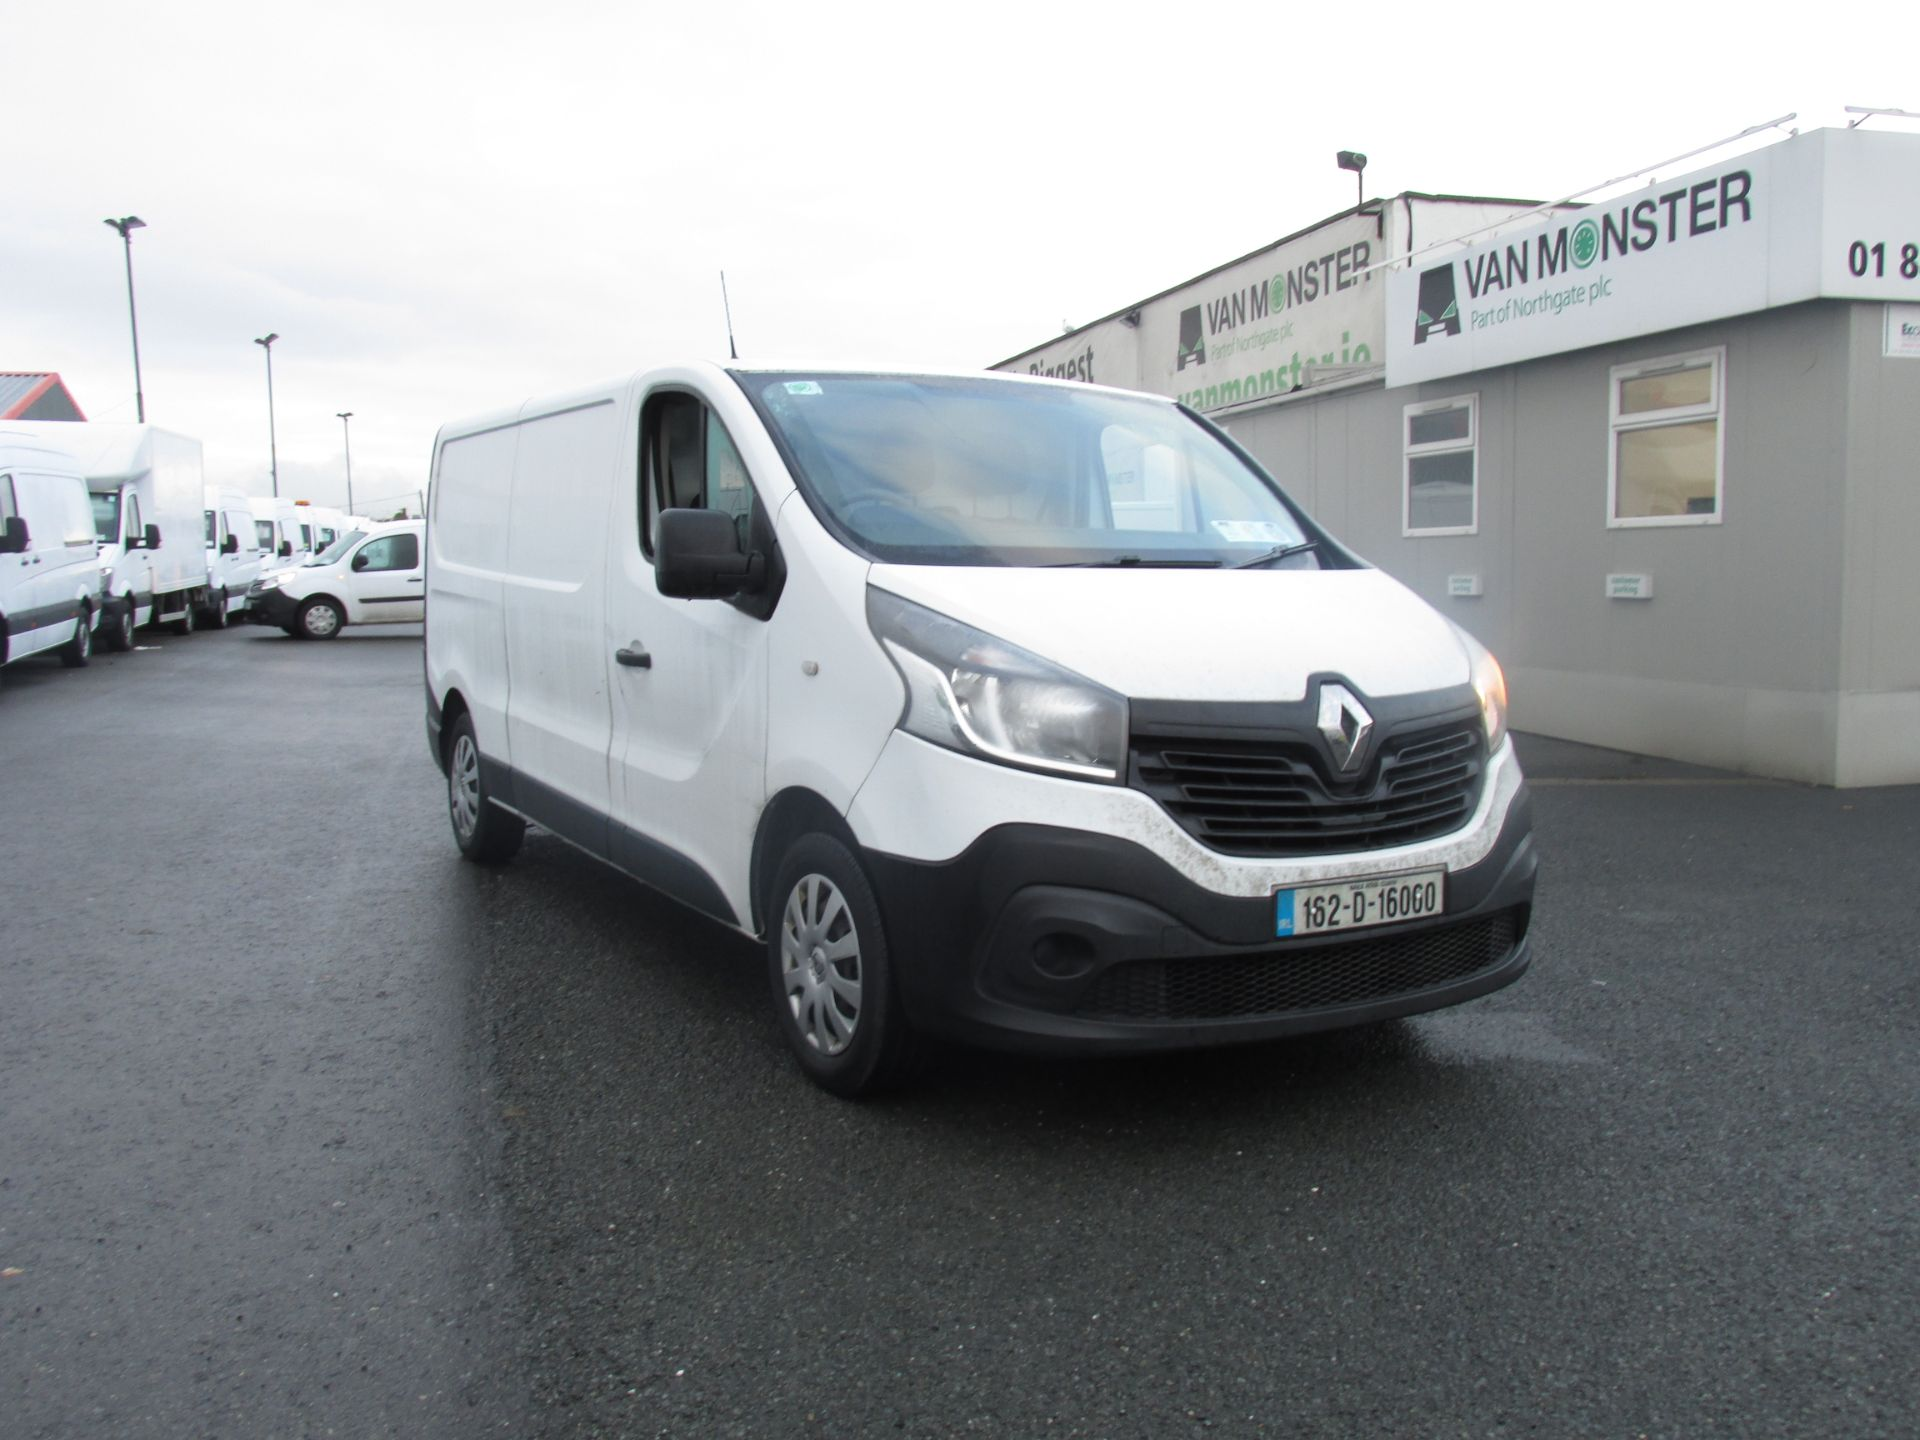 2016 Renault Trafic LL29 DCI 115 Business Panel VA (162D16060)